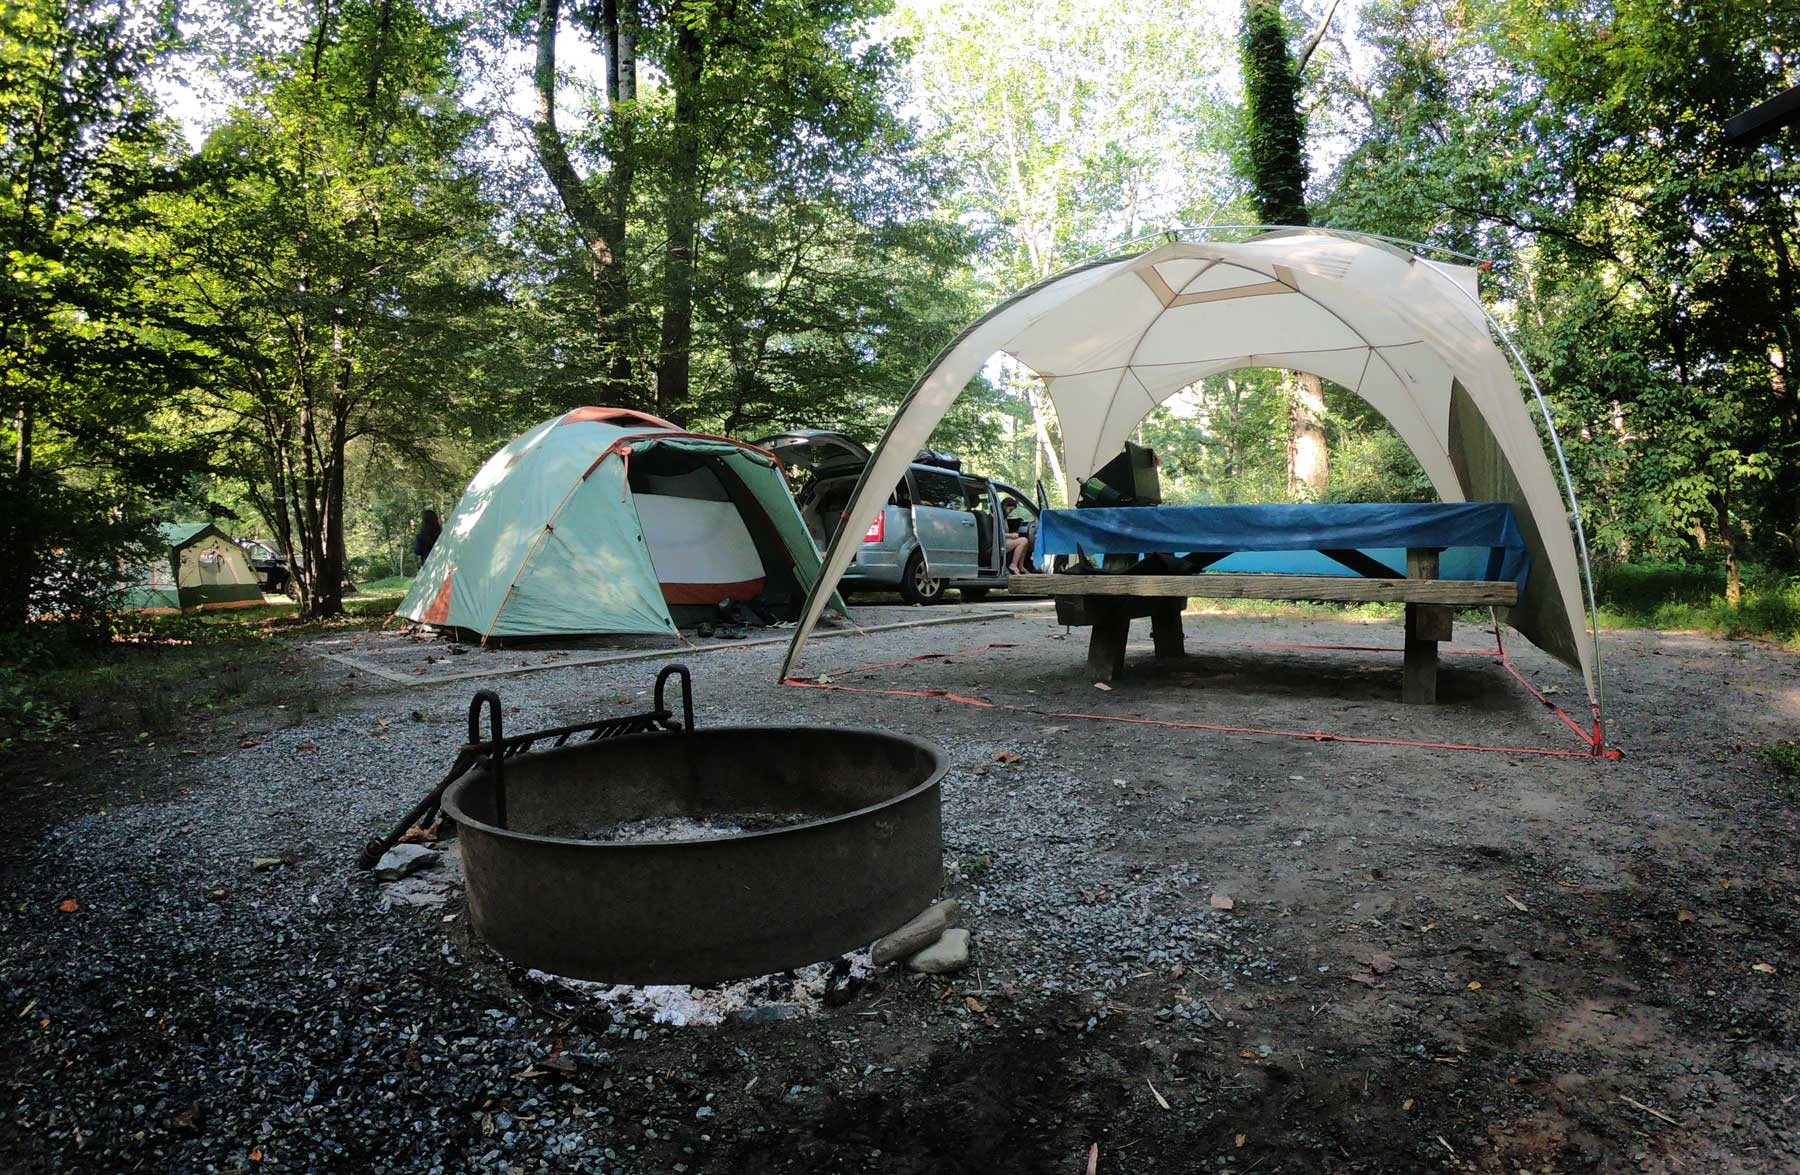 Tent and picnic table at campsite in the Davidson River Campground, near Brevard, North Carolinaa